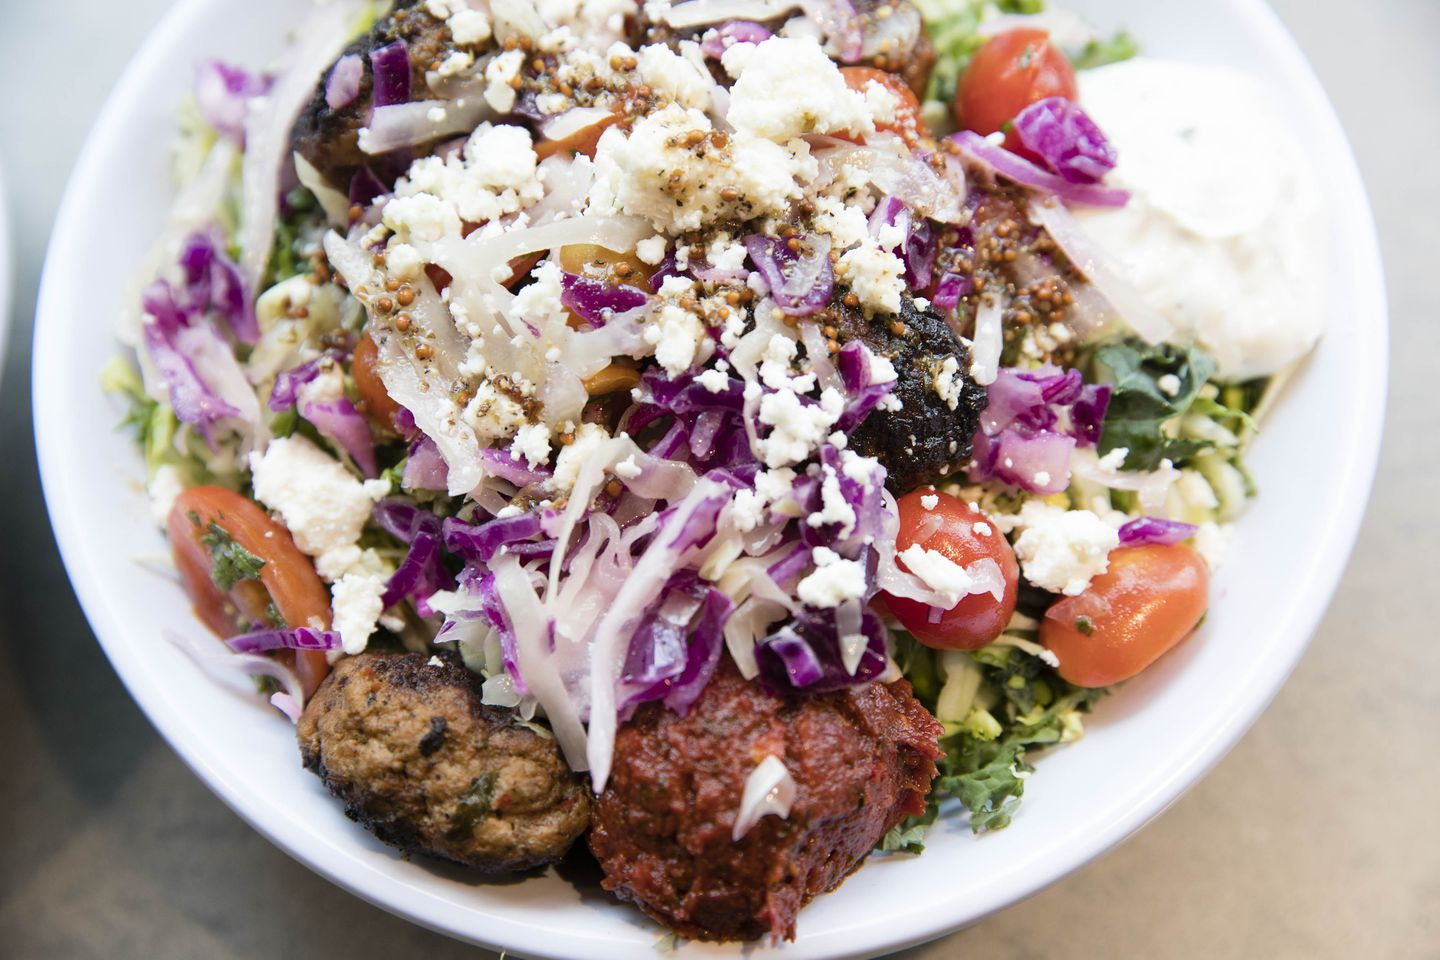 A super greens bowl with spicy lamb meatballs, hummus, tzatziki, harissa, tomato, onion, cabbage slaw, crumbled feta, and greek vinaigrette at Cava on Boylston Street.